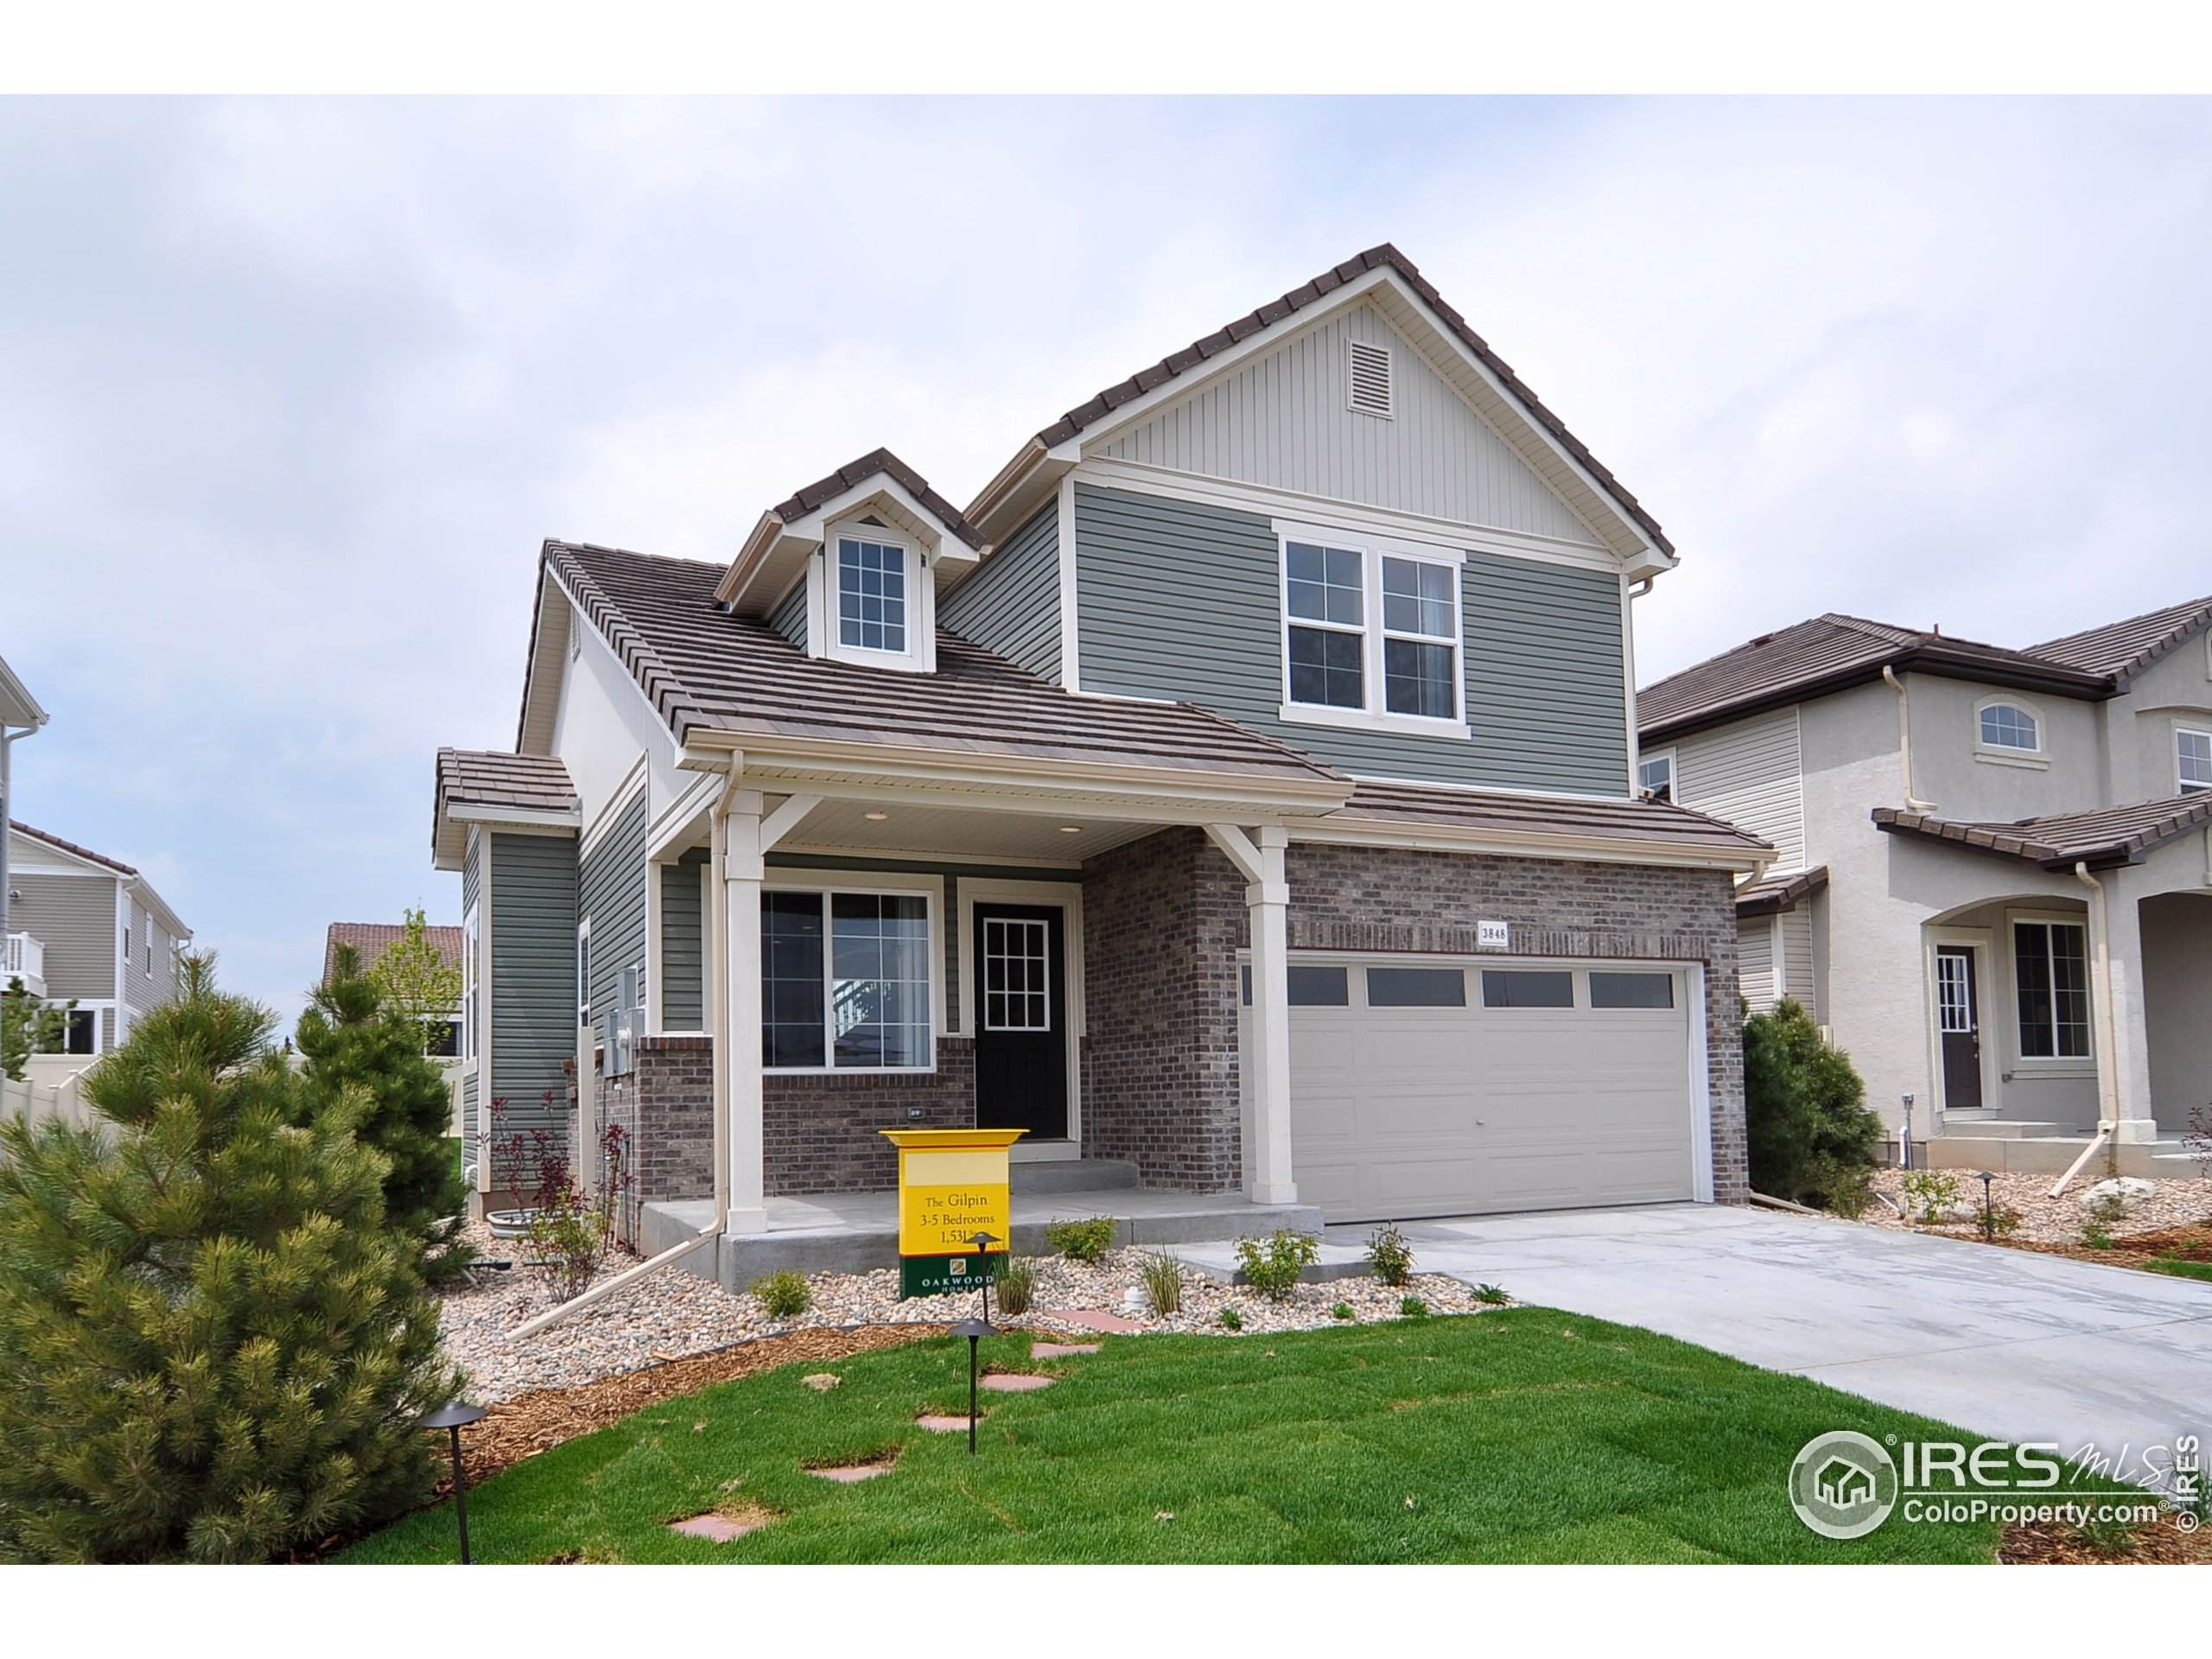 543 Country Rd, Berthoud, CO 80513 (MLS #929427) :: J2 Real Estate Group at Remax Alliance